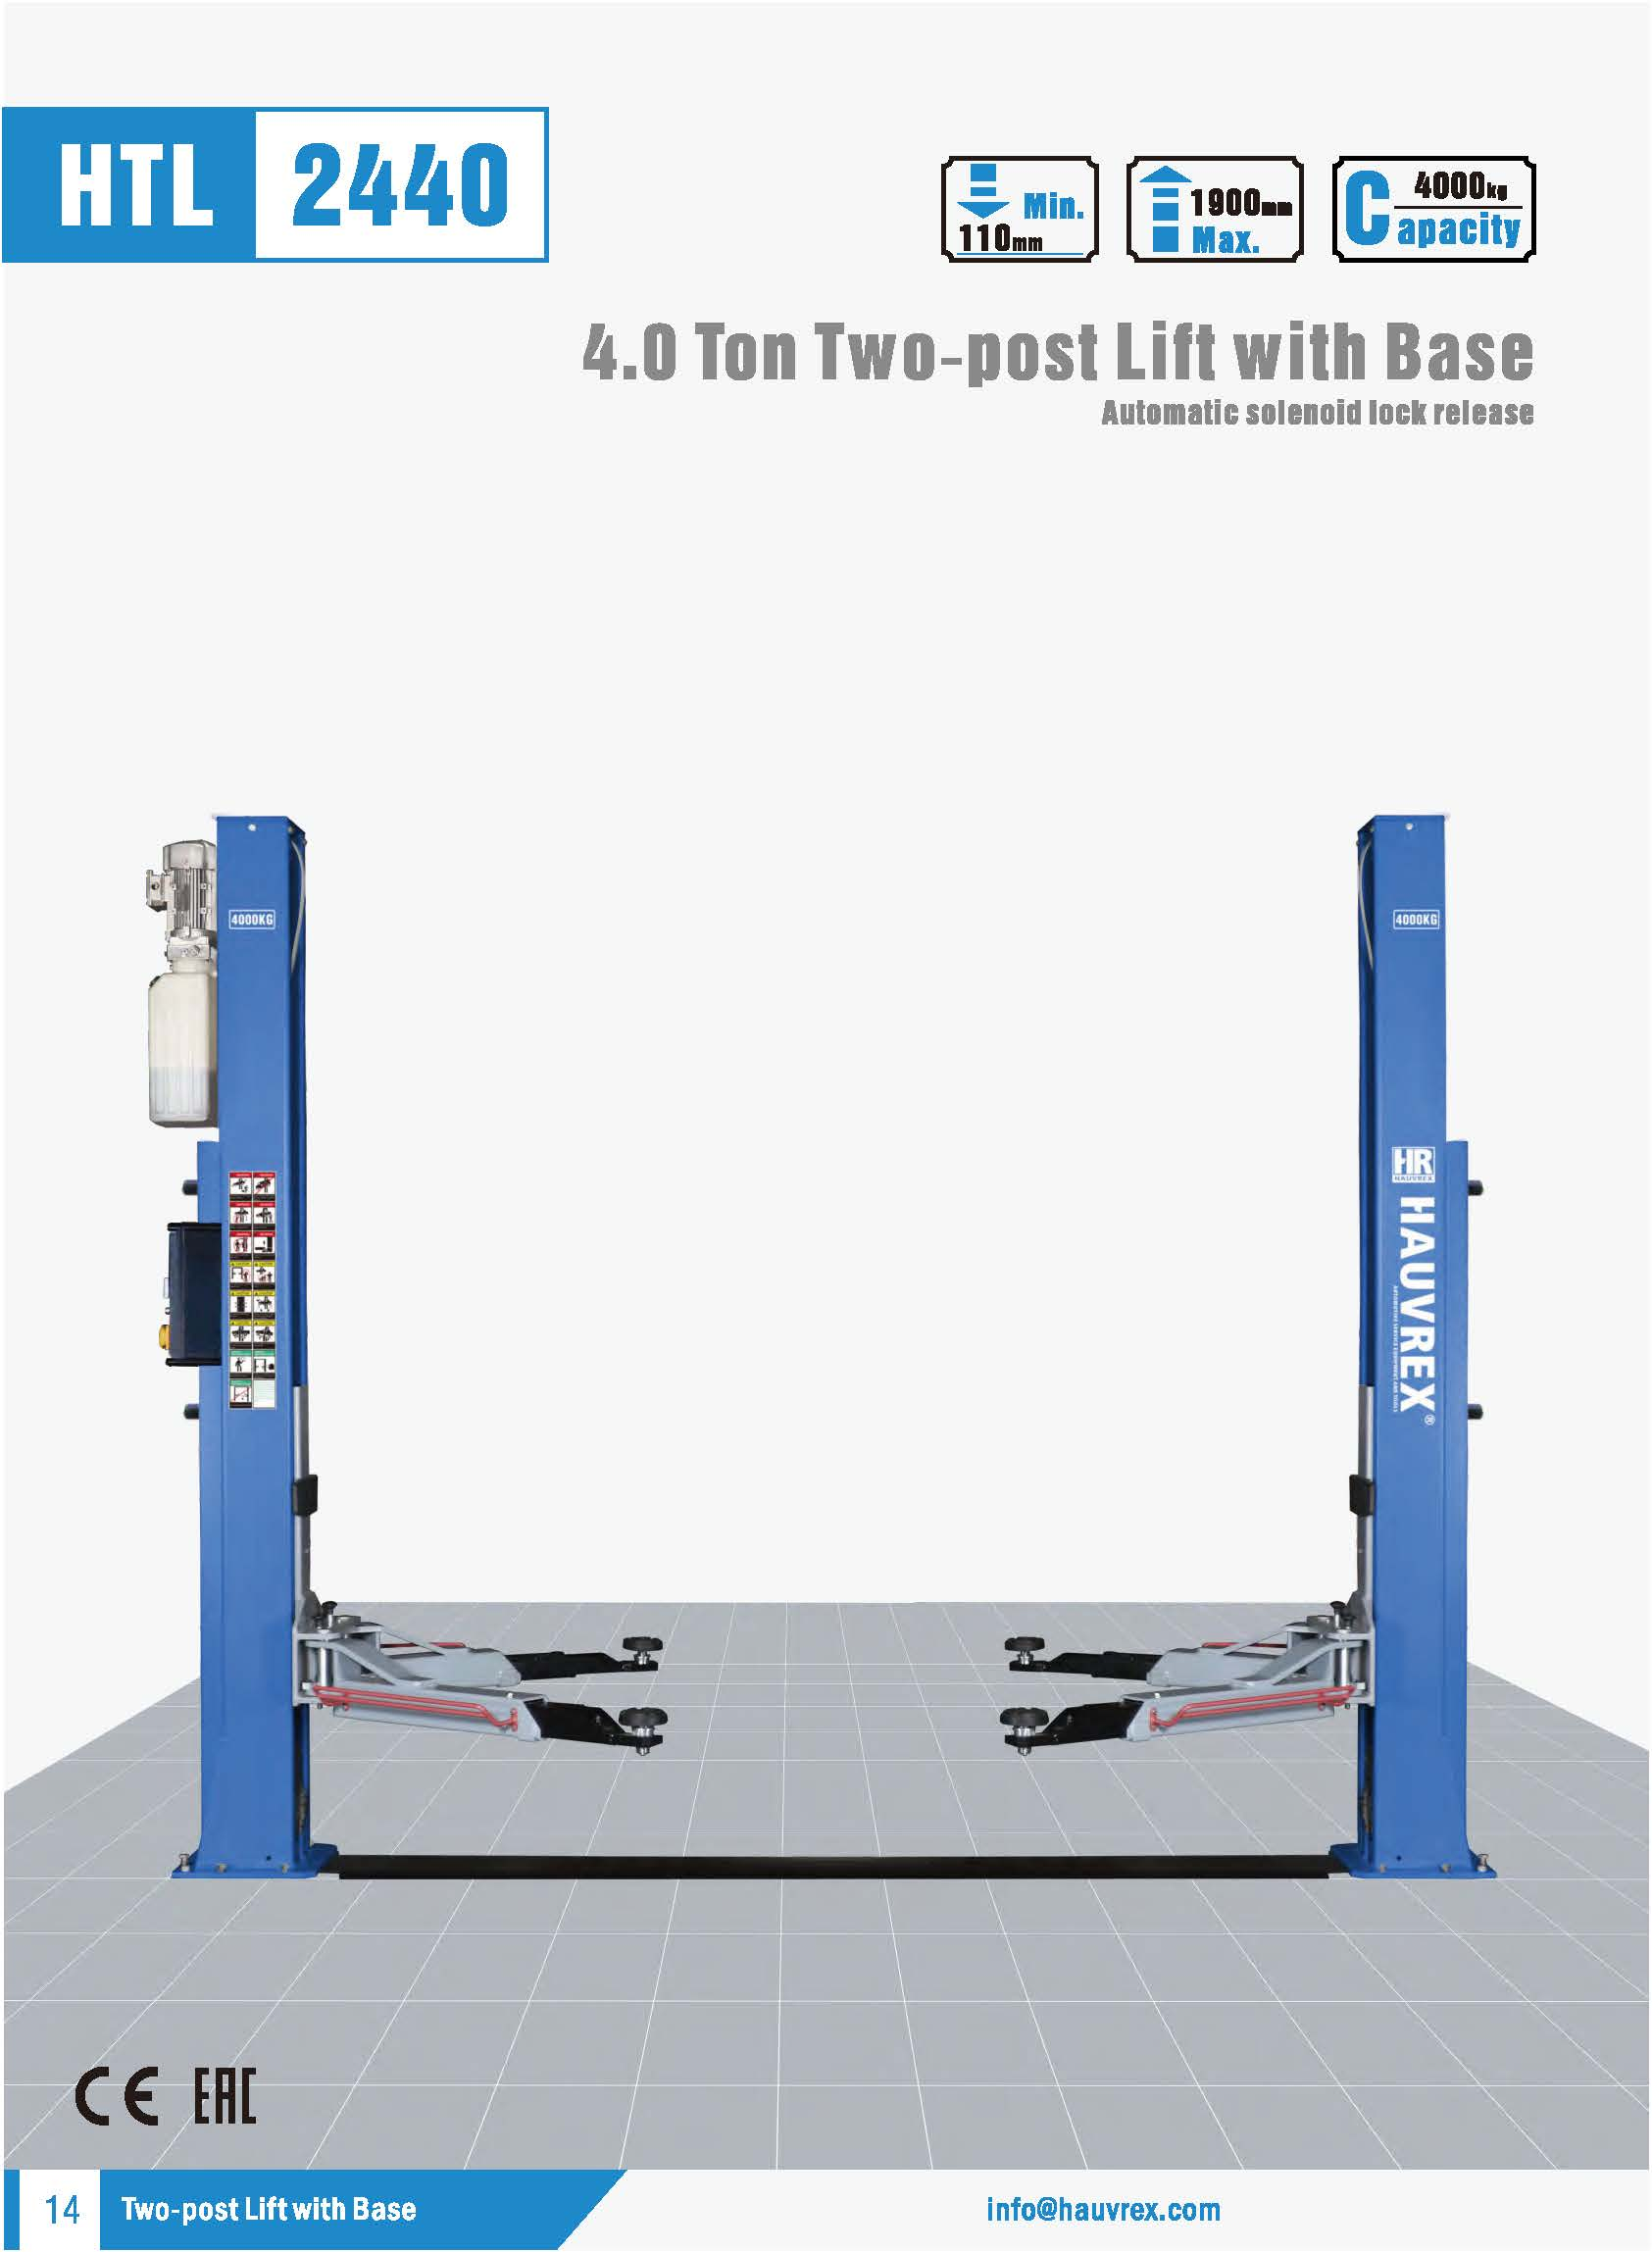 HTL2440 Two-post Lift